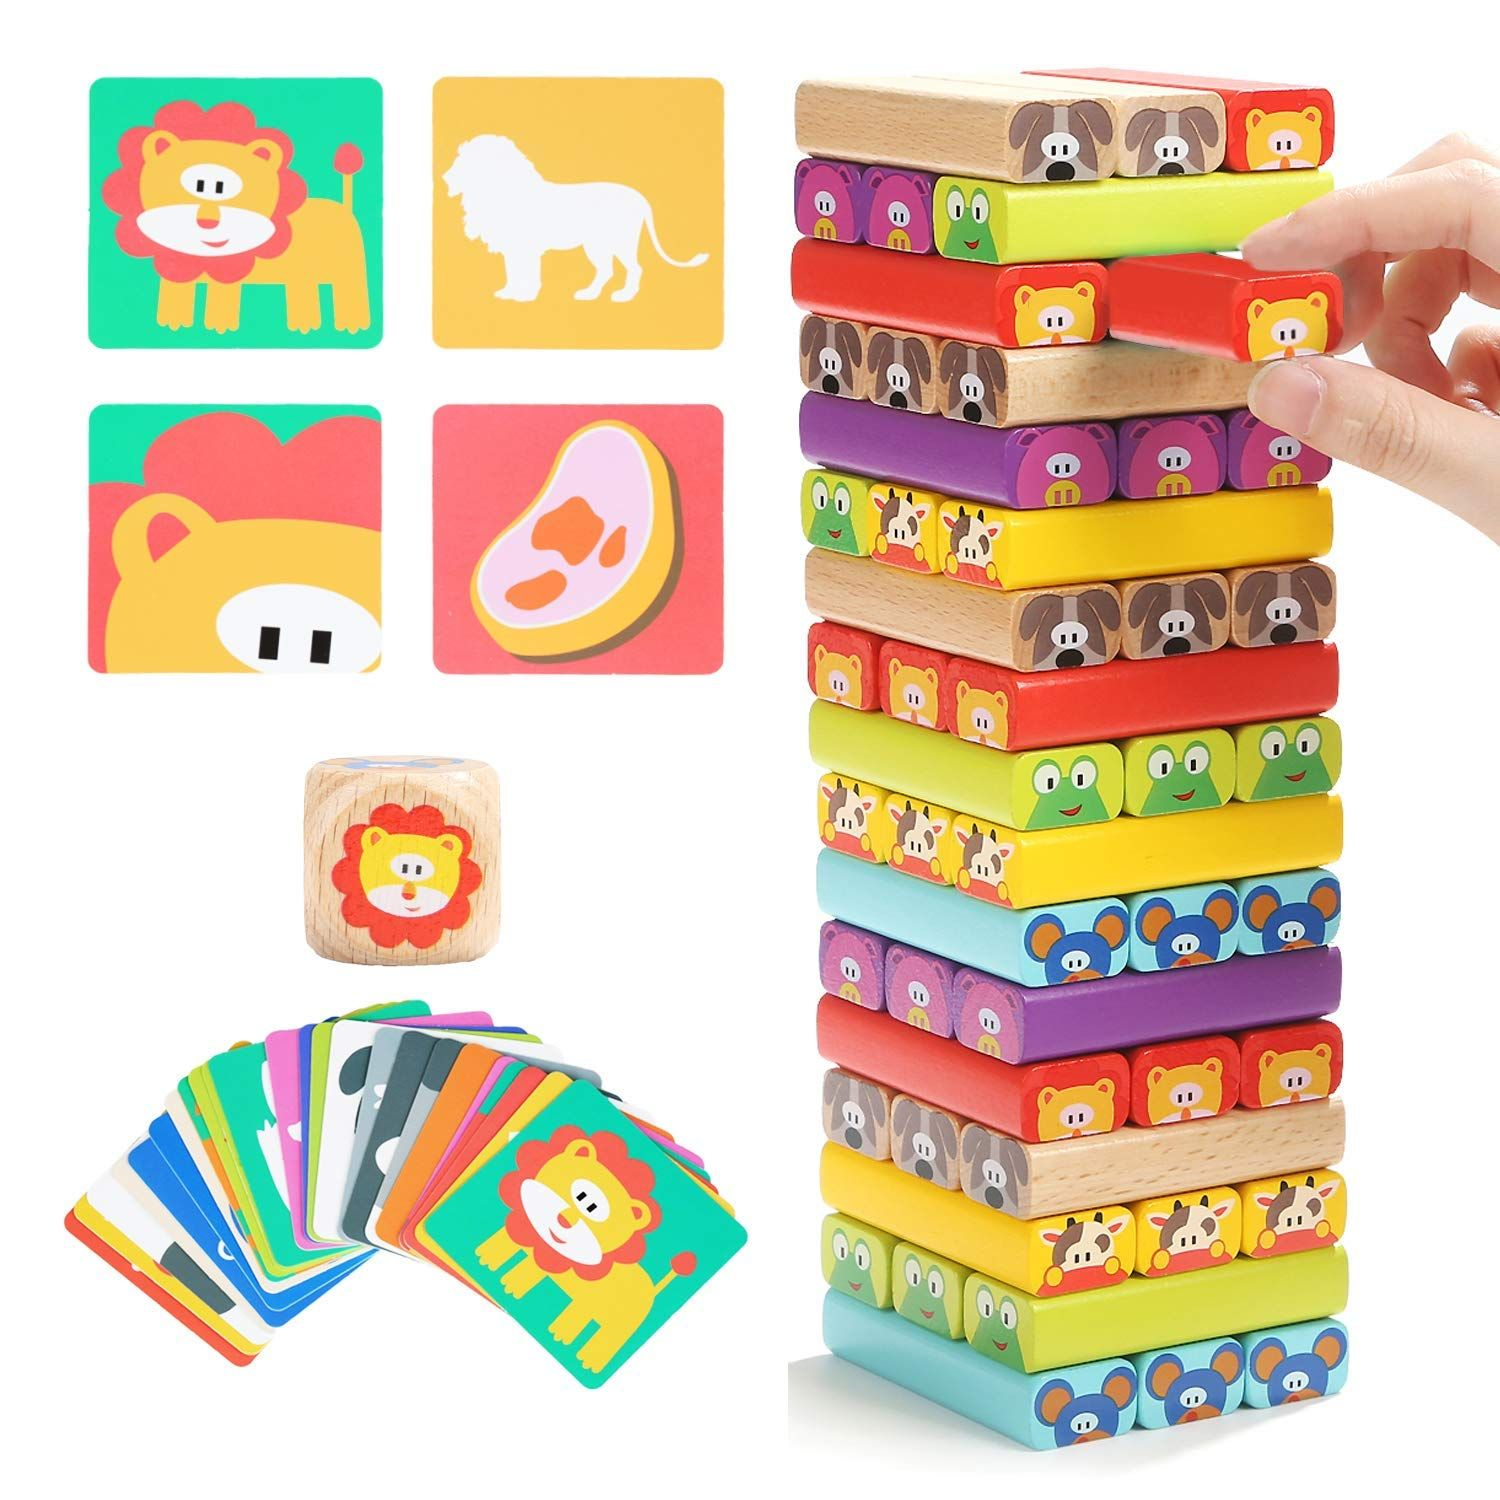 Best Board Games For 4 Year Olds With Images Board Games For